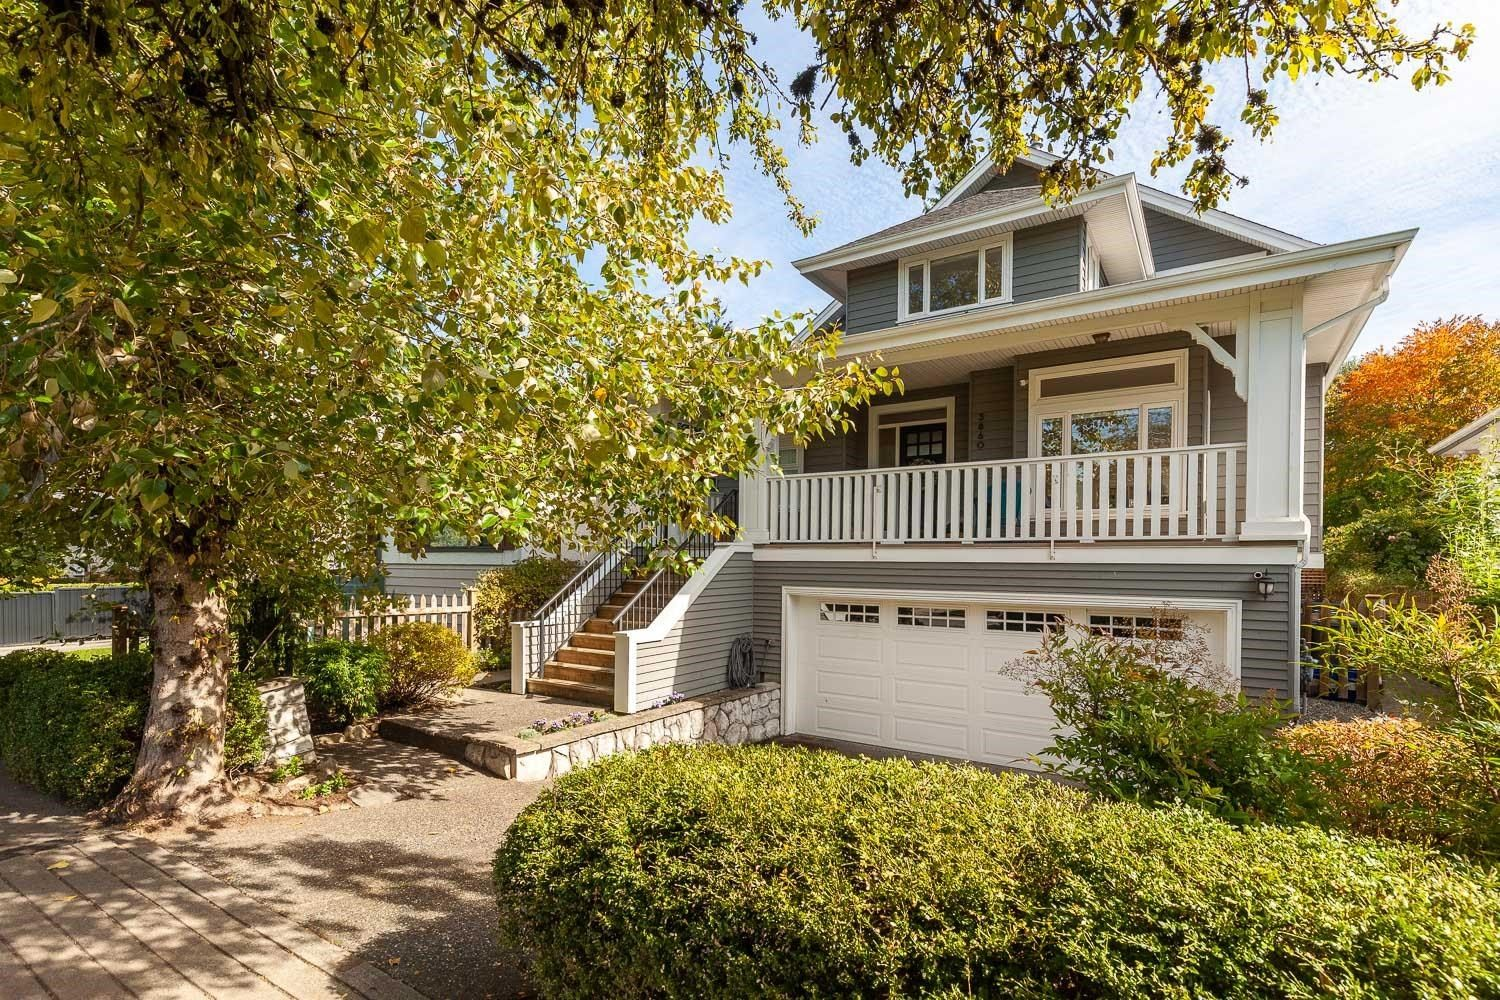 Main Photo: 3860 ONTARIO Street in Vancouver: Main House for sale (Vancouver East)  : MLS®# R2621811